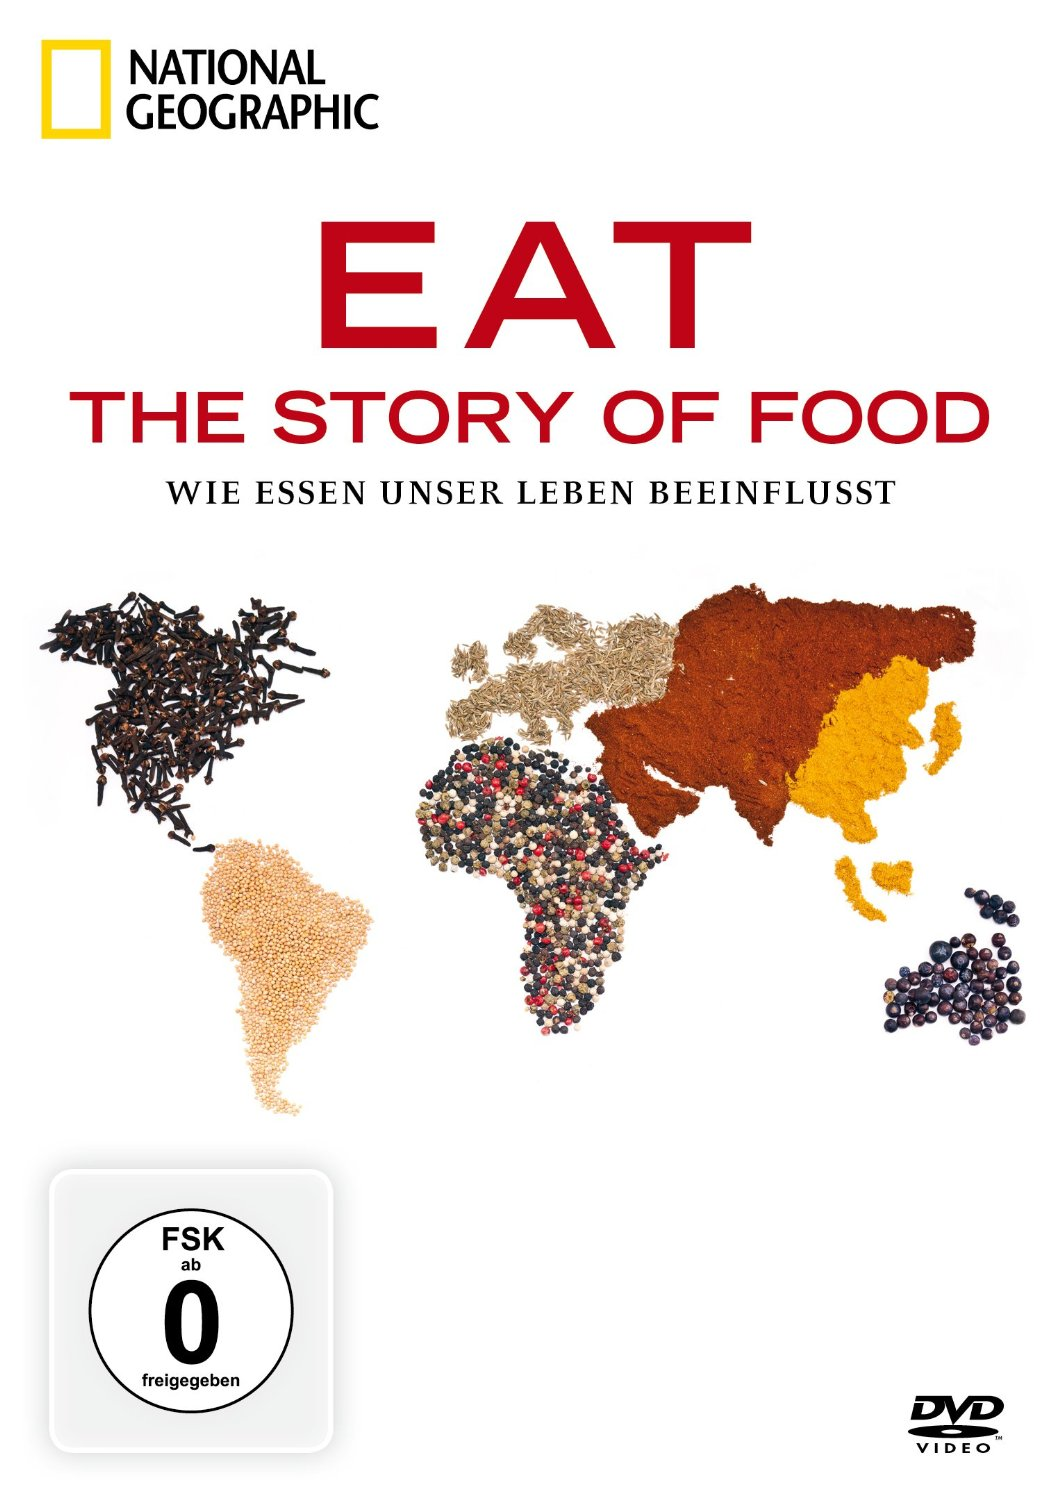 National Geographic - Eat: The Story of Food - Wie Essen unser Leben beeinflusst [2 DVDs]